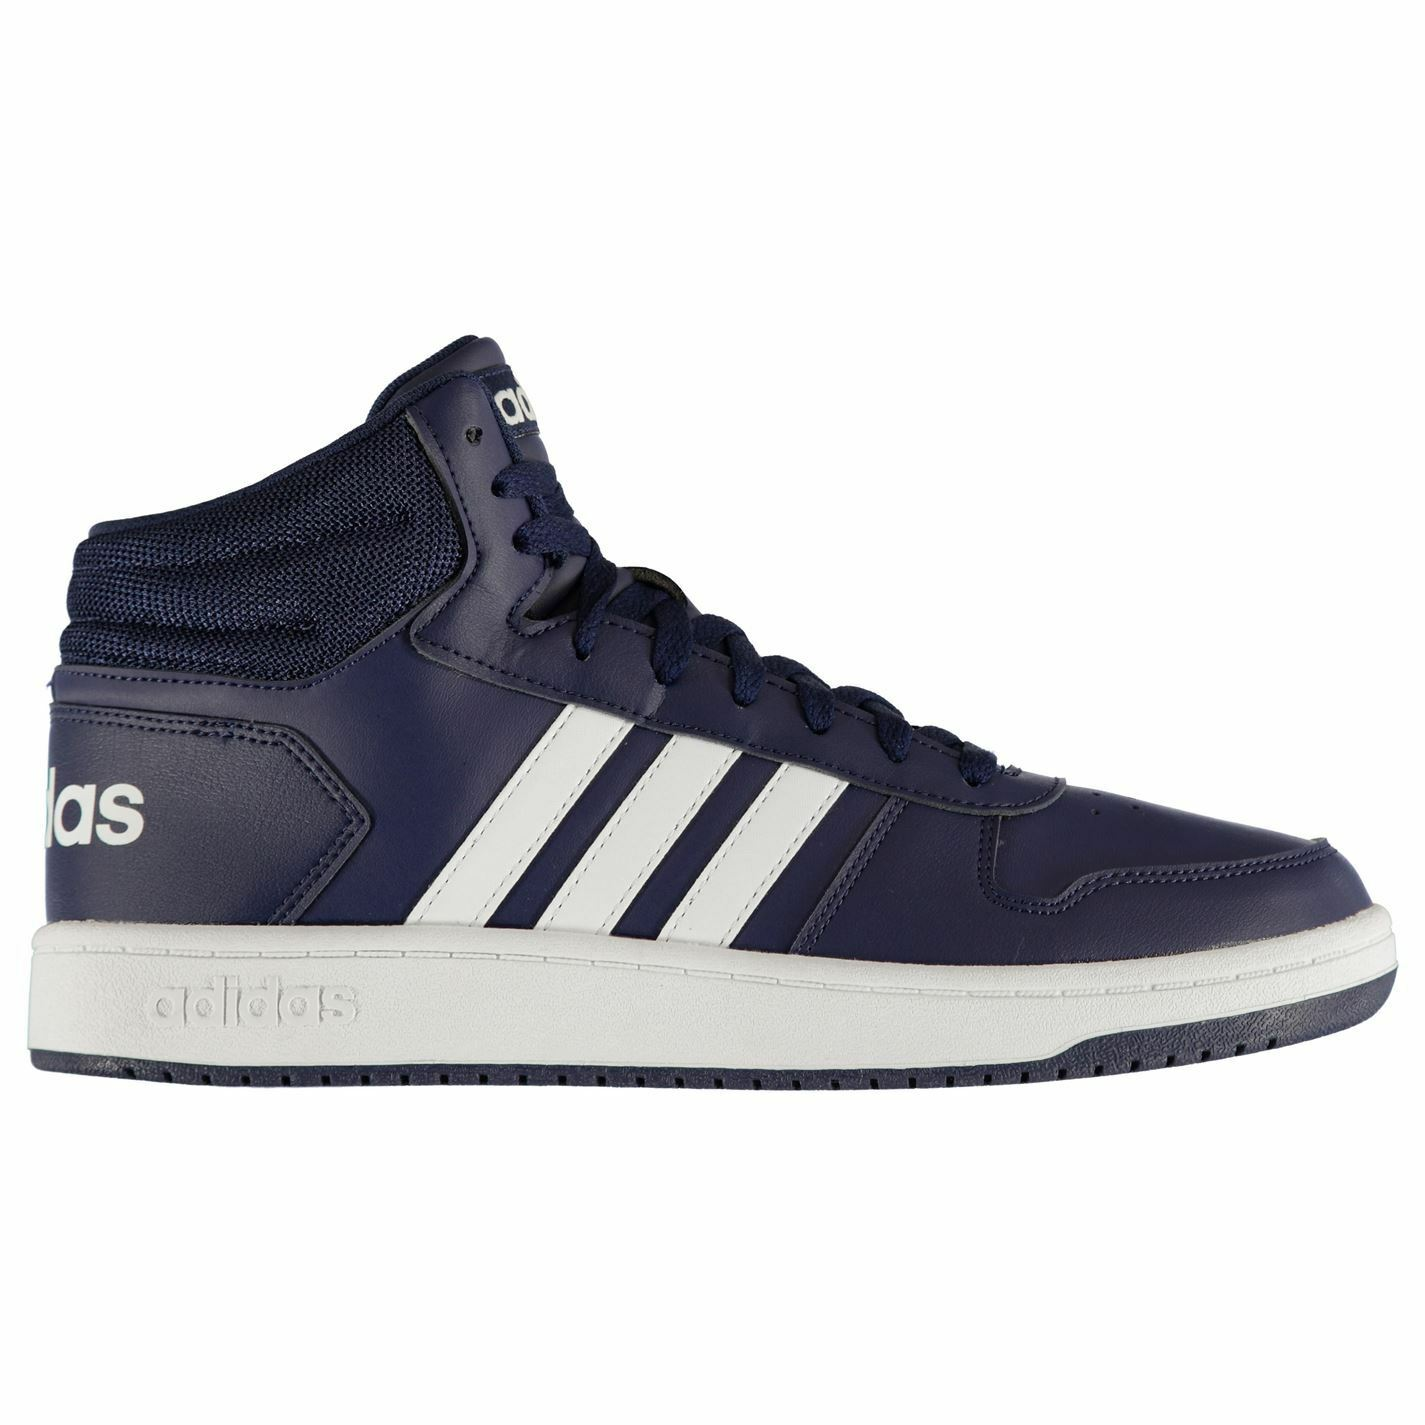 Adidas Mens Hoops Mid shoes High Top Lace Up Breathable Comfortable Fit Textured